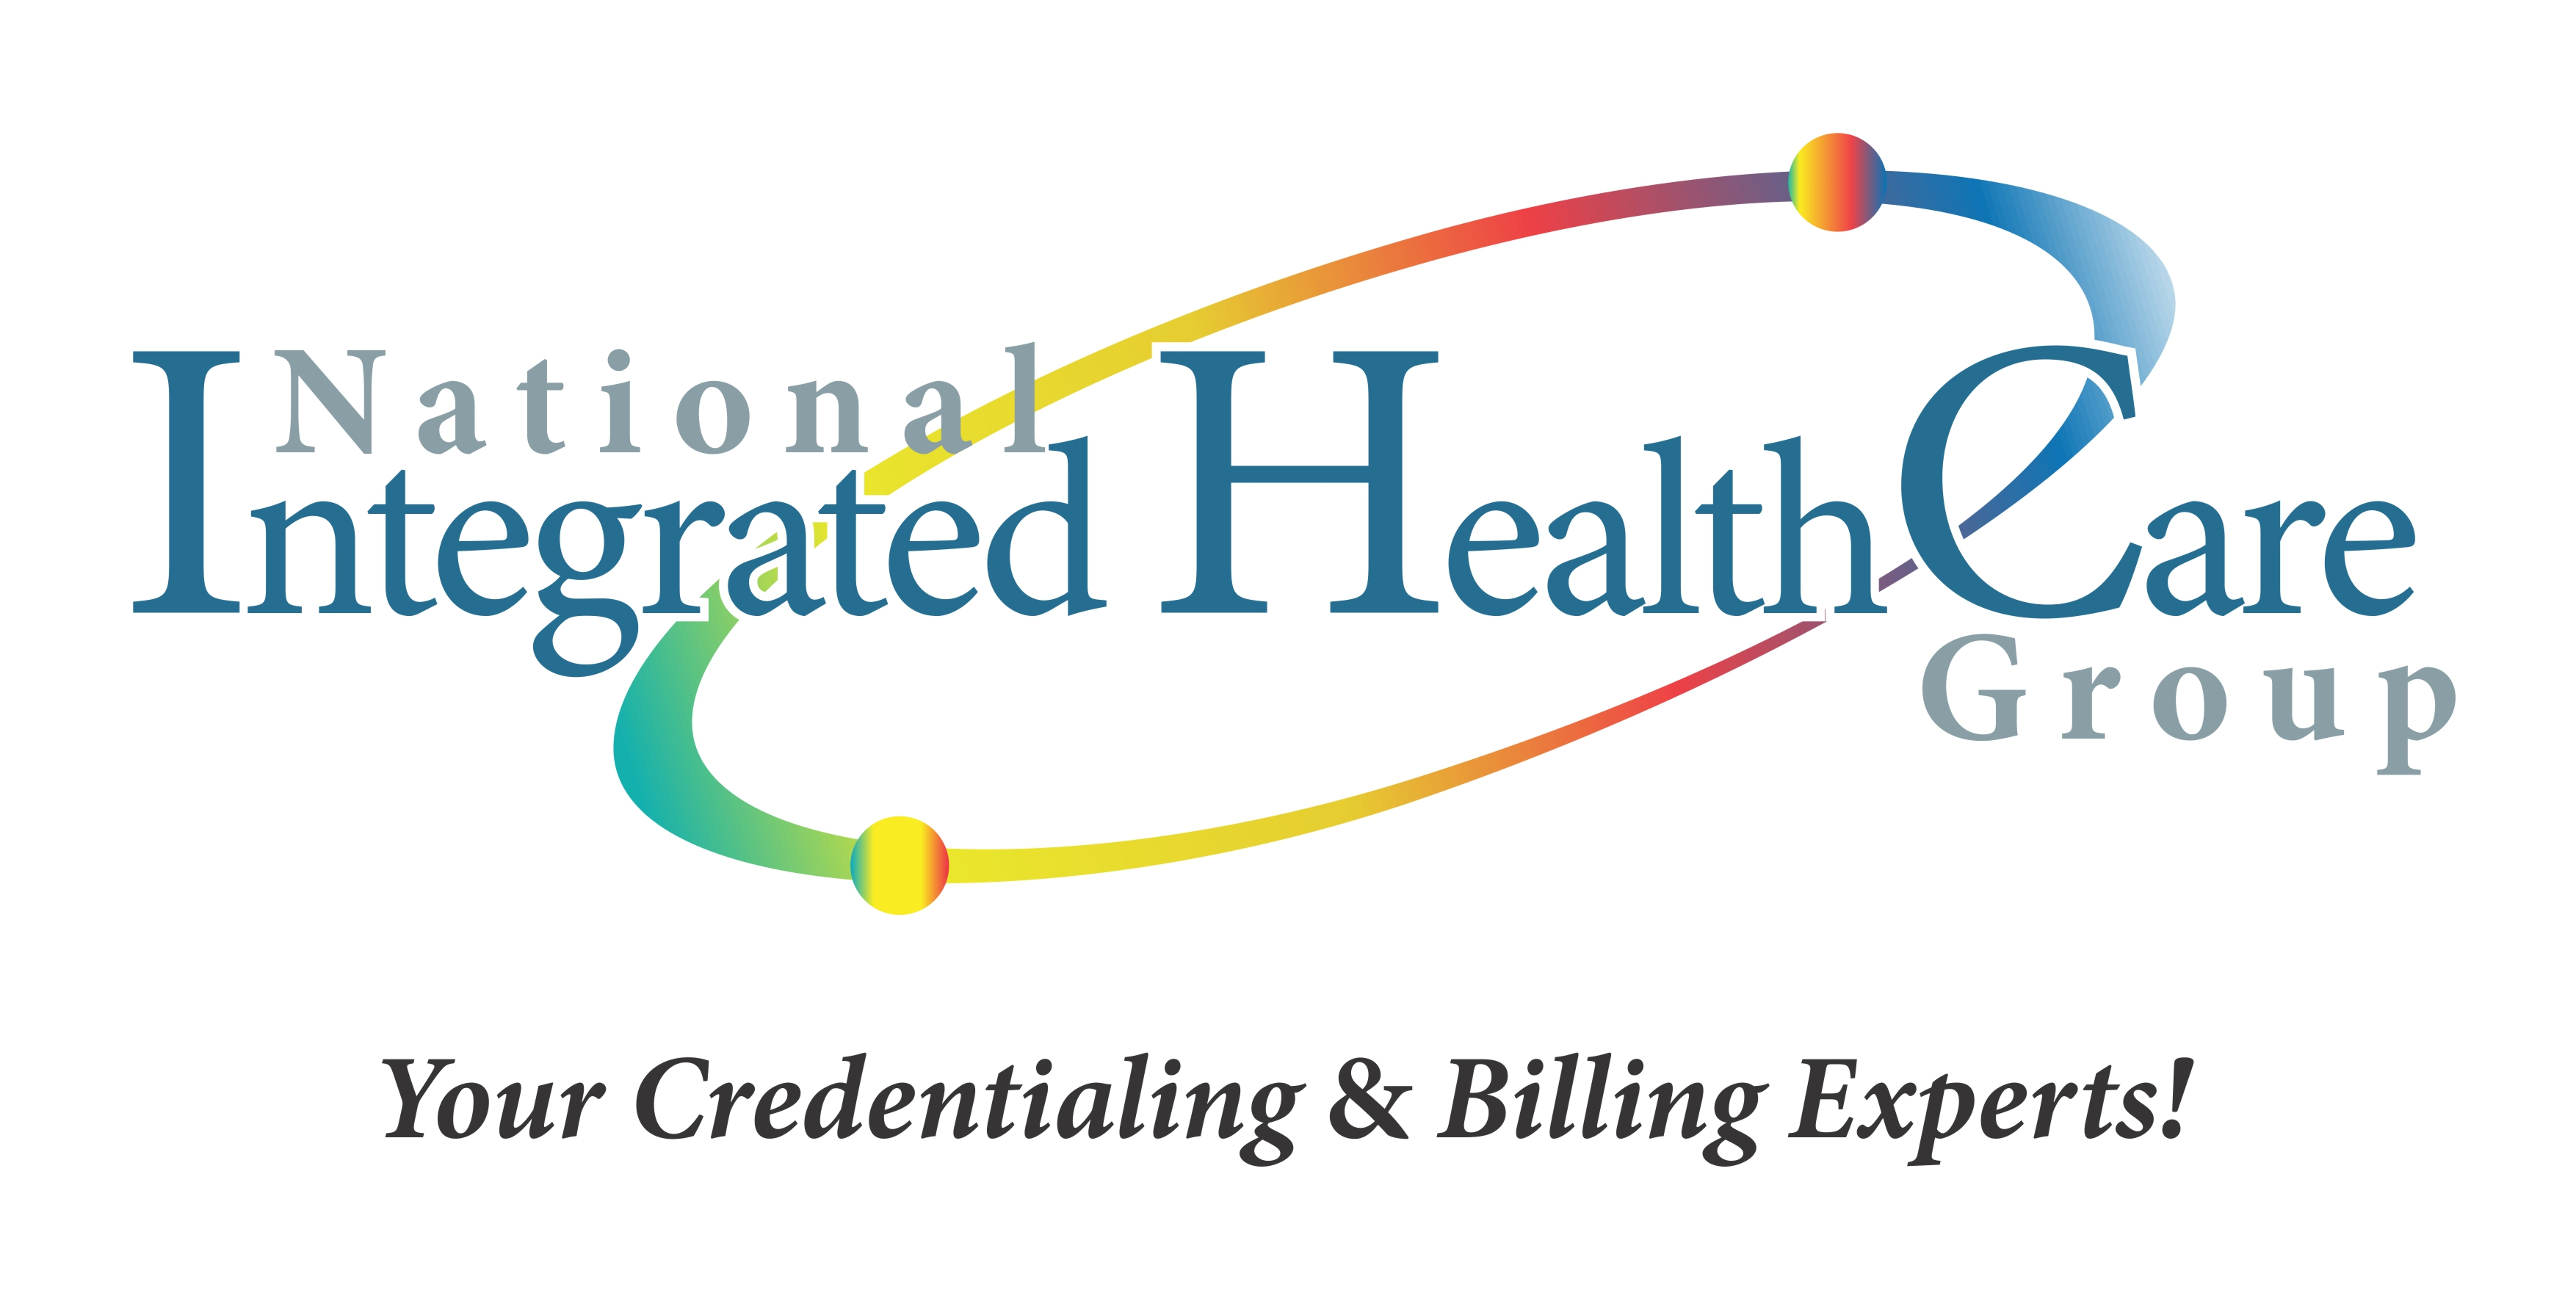 National Integrated Health Care Group logo